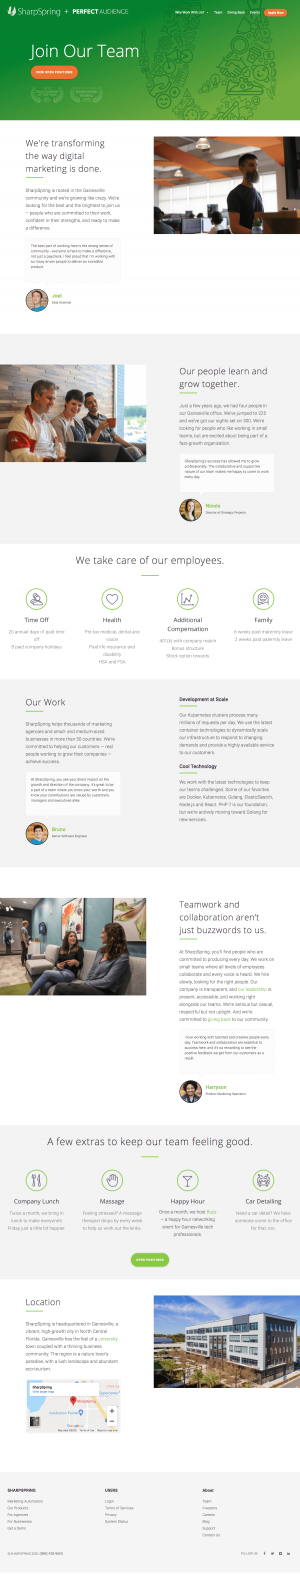 SharpSpring – Career page